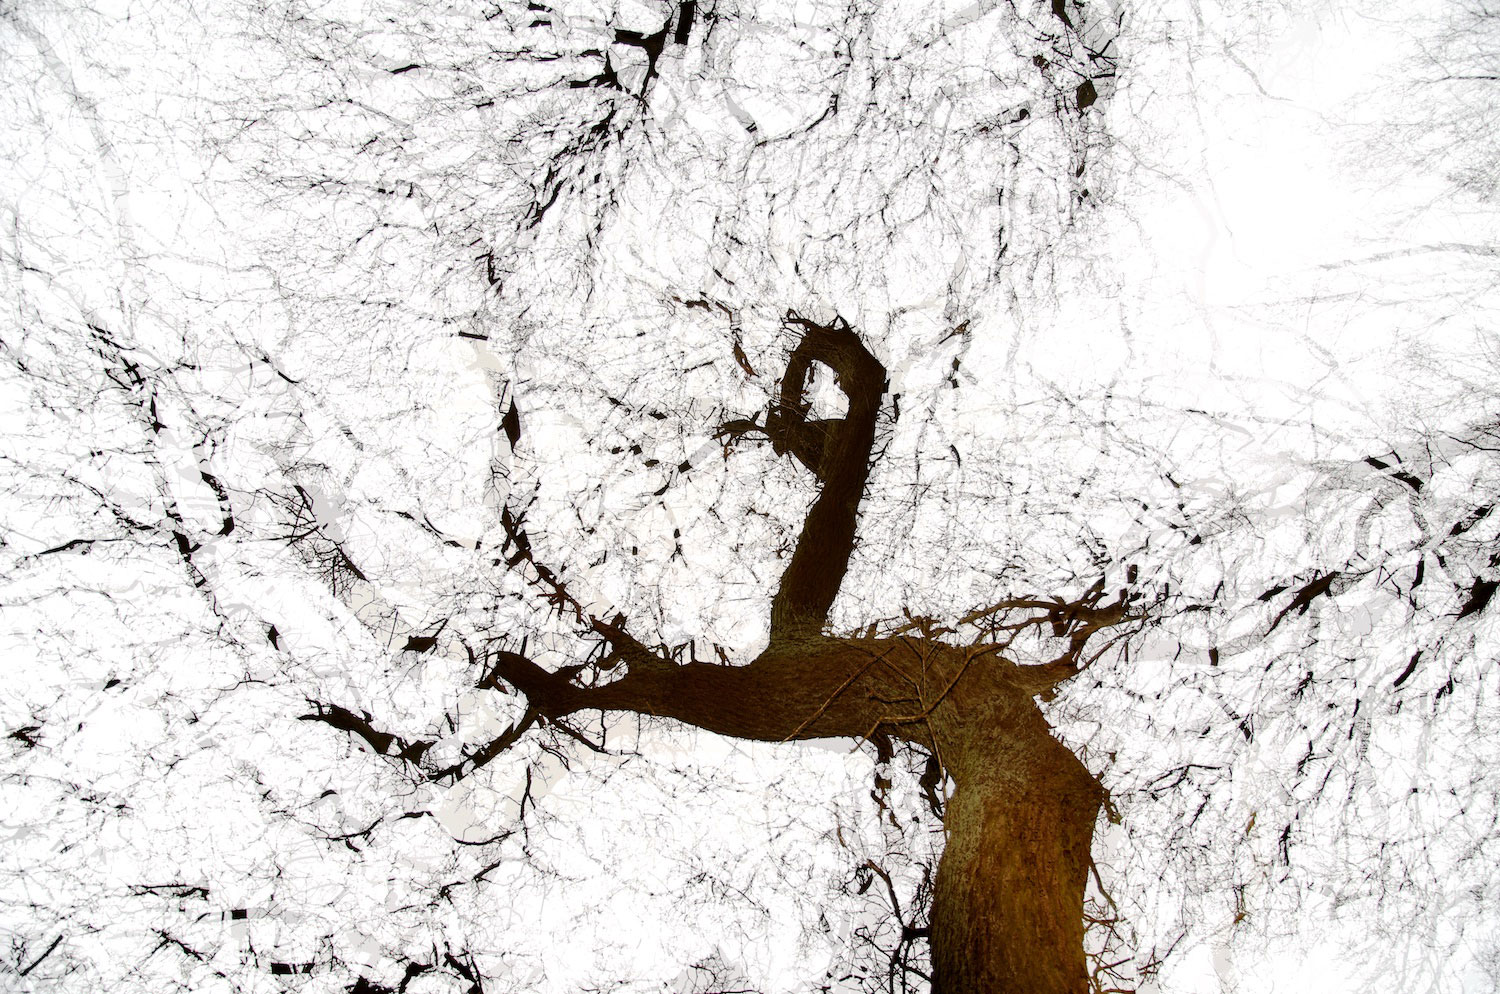 Peter Moritz, moritzform, photography, nature, tree, multiple exposure